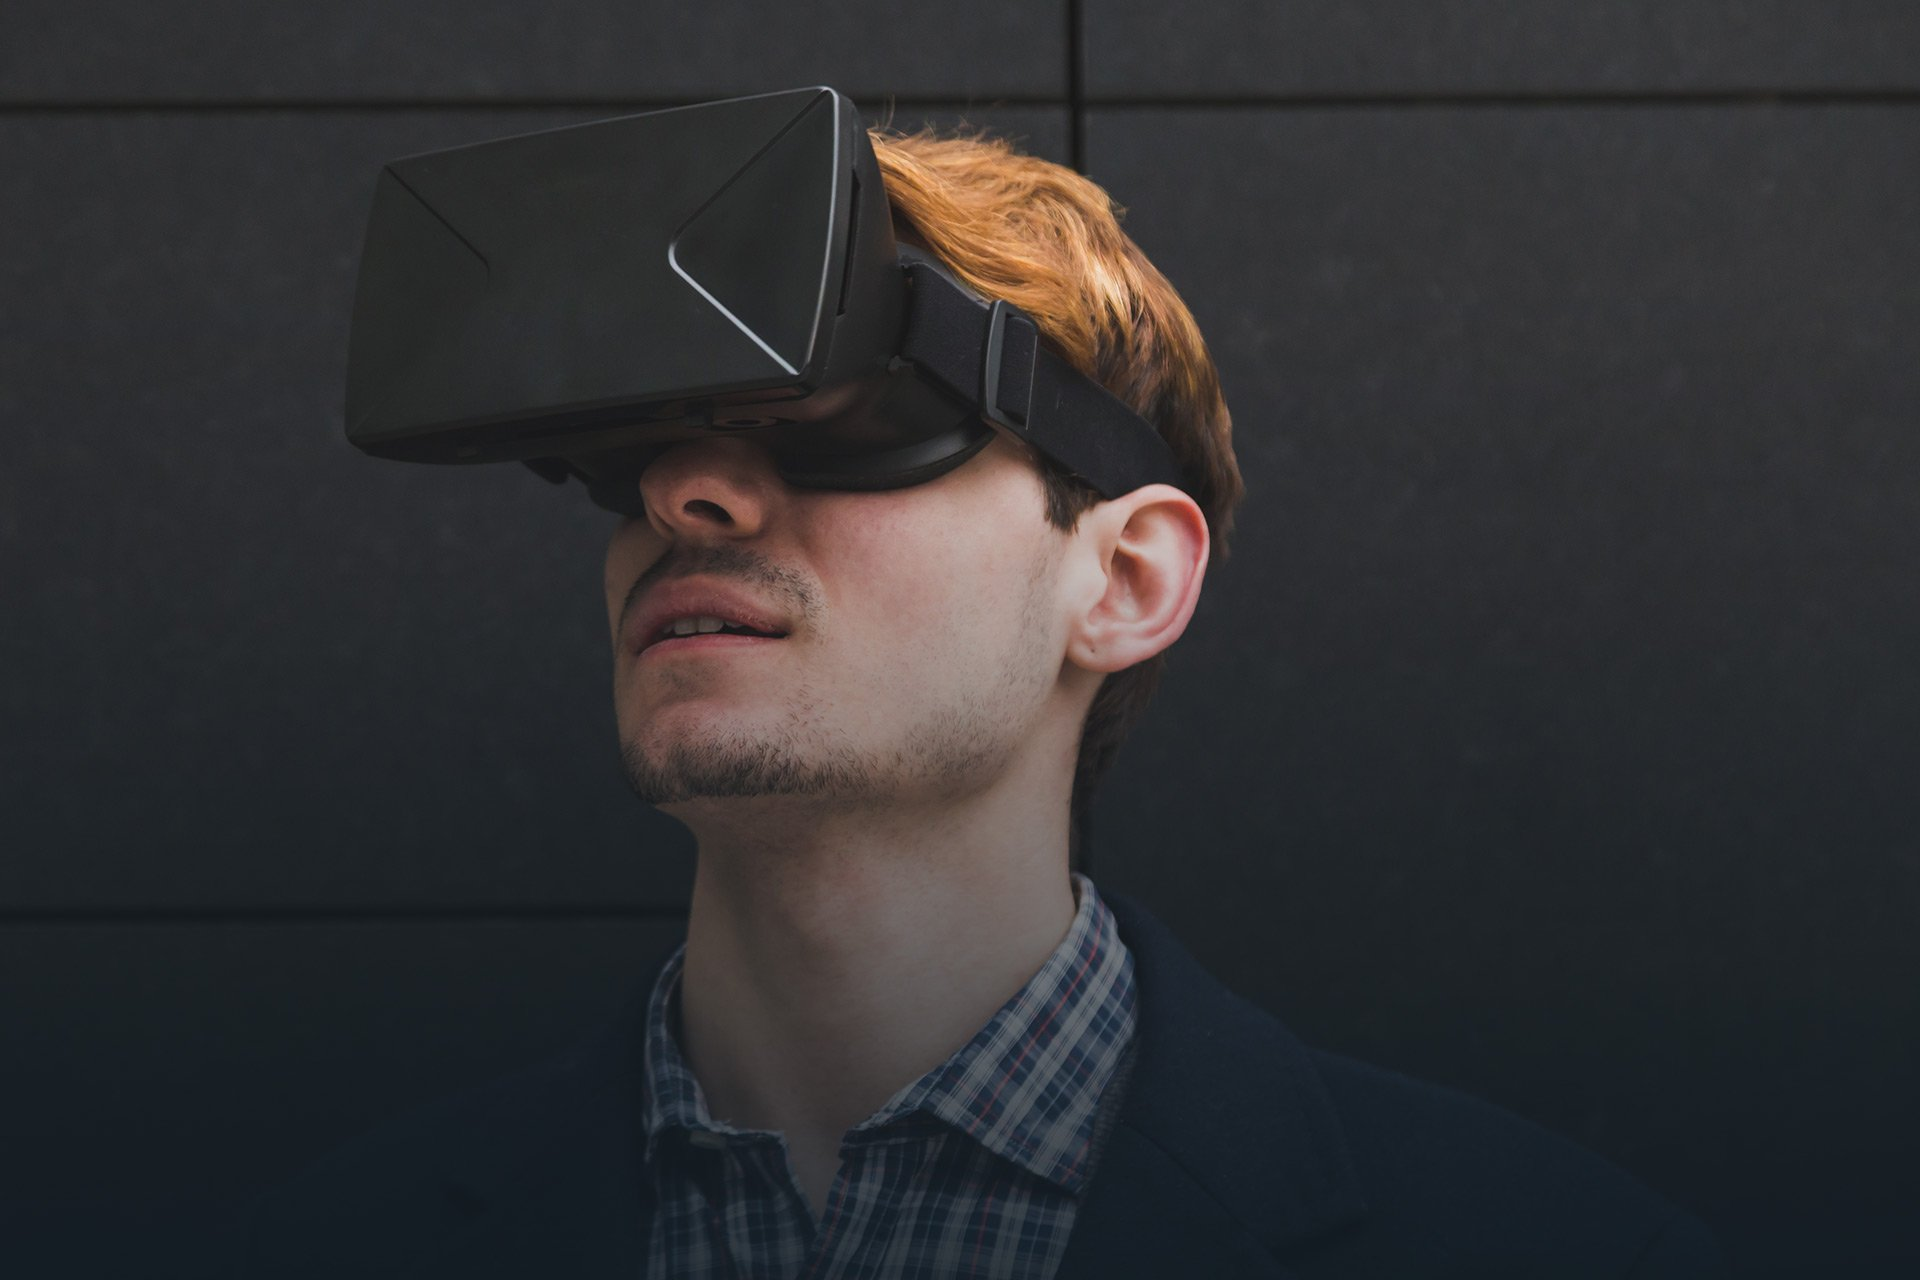 bg-man / App design / Apparel / Art Direction / Brand Collateral / Brand Development / Branding / Brochures / Cards / CMS / Content / Copyrighting / Design / Development / Digital / eCommerce / Embedded / Illustration / Logo Design / Mobile Apps / Packaging / PCB design / Photography / Posters / Print / Responsive Web Design / Signage / Software / Video / Web design